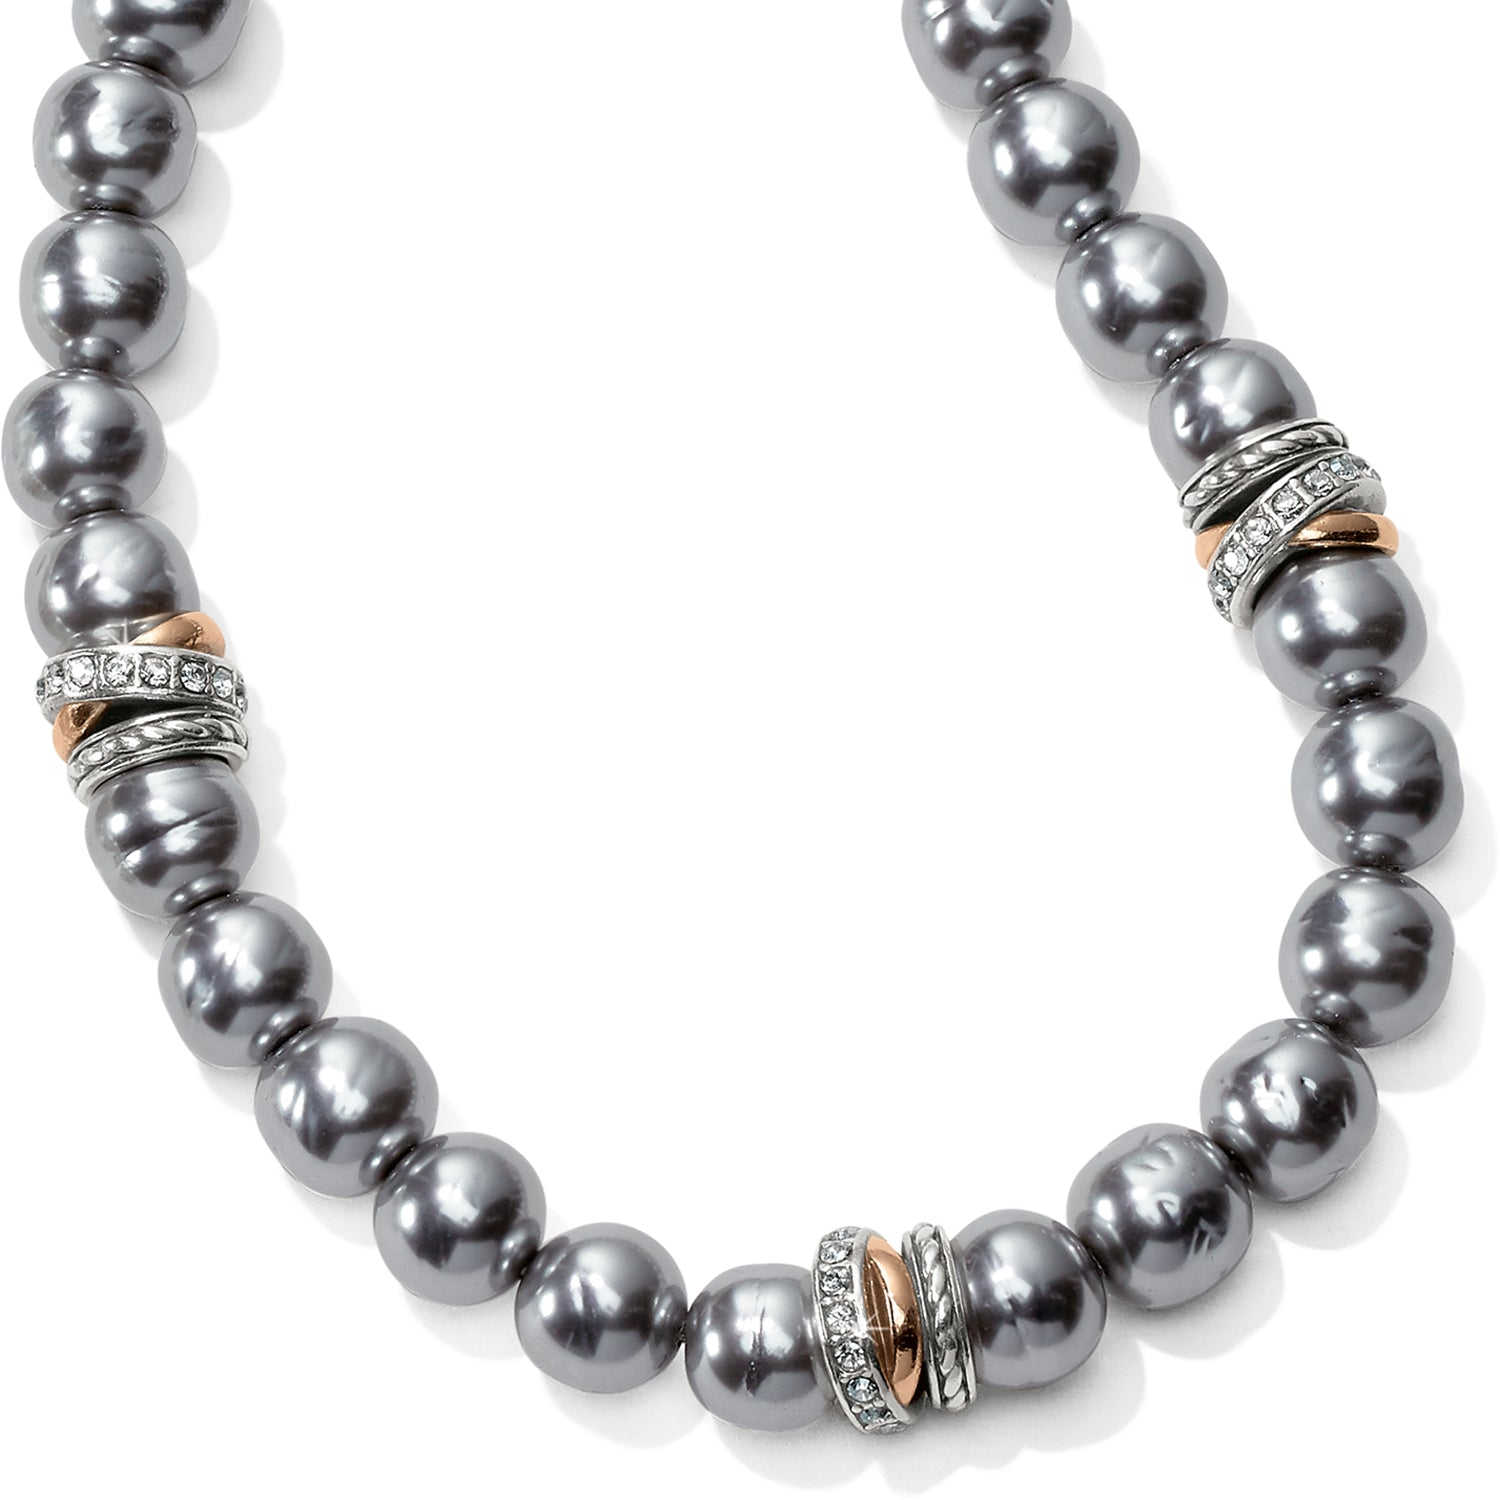 Neptune's Rings Gray Pearl Short Necklace